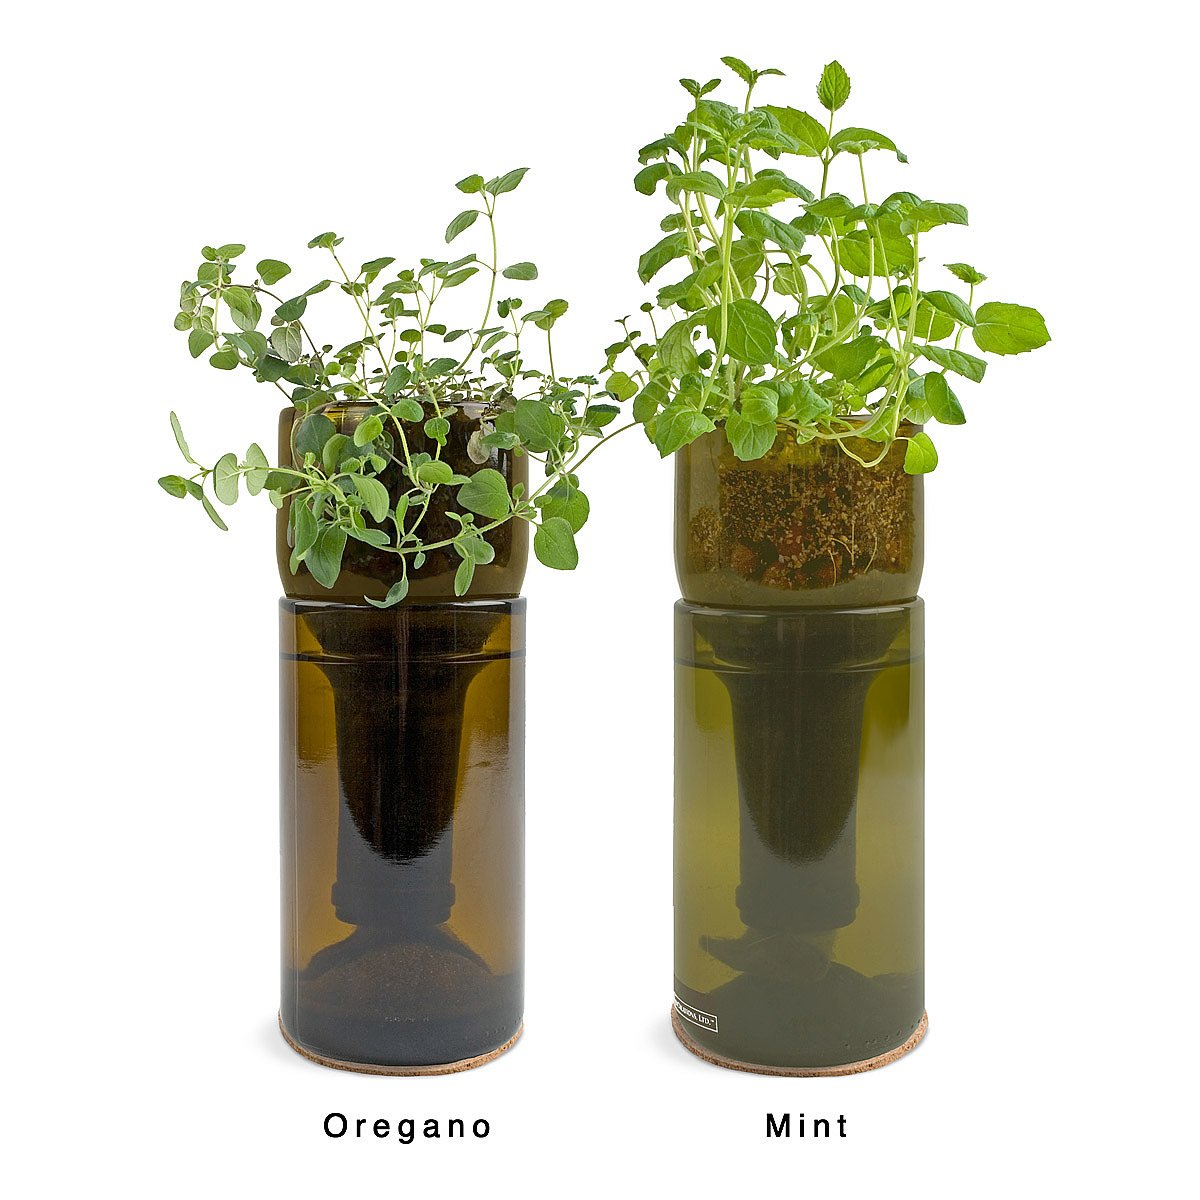 This is on my Wish List: GrowBottle | Indoor Herb Garden Kit, Wine Bottle Planter | UncommonGoods